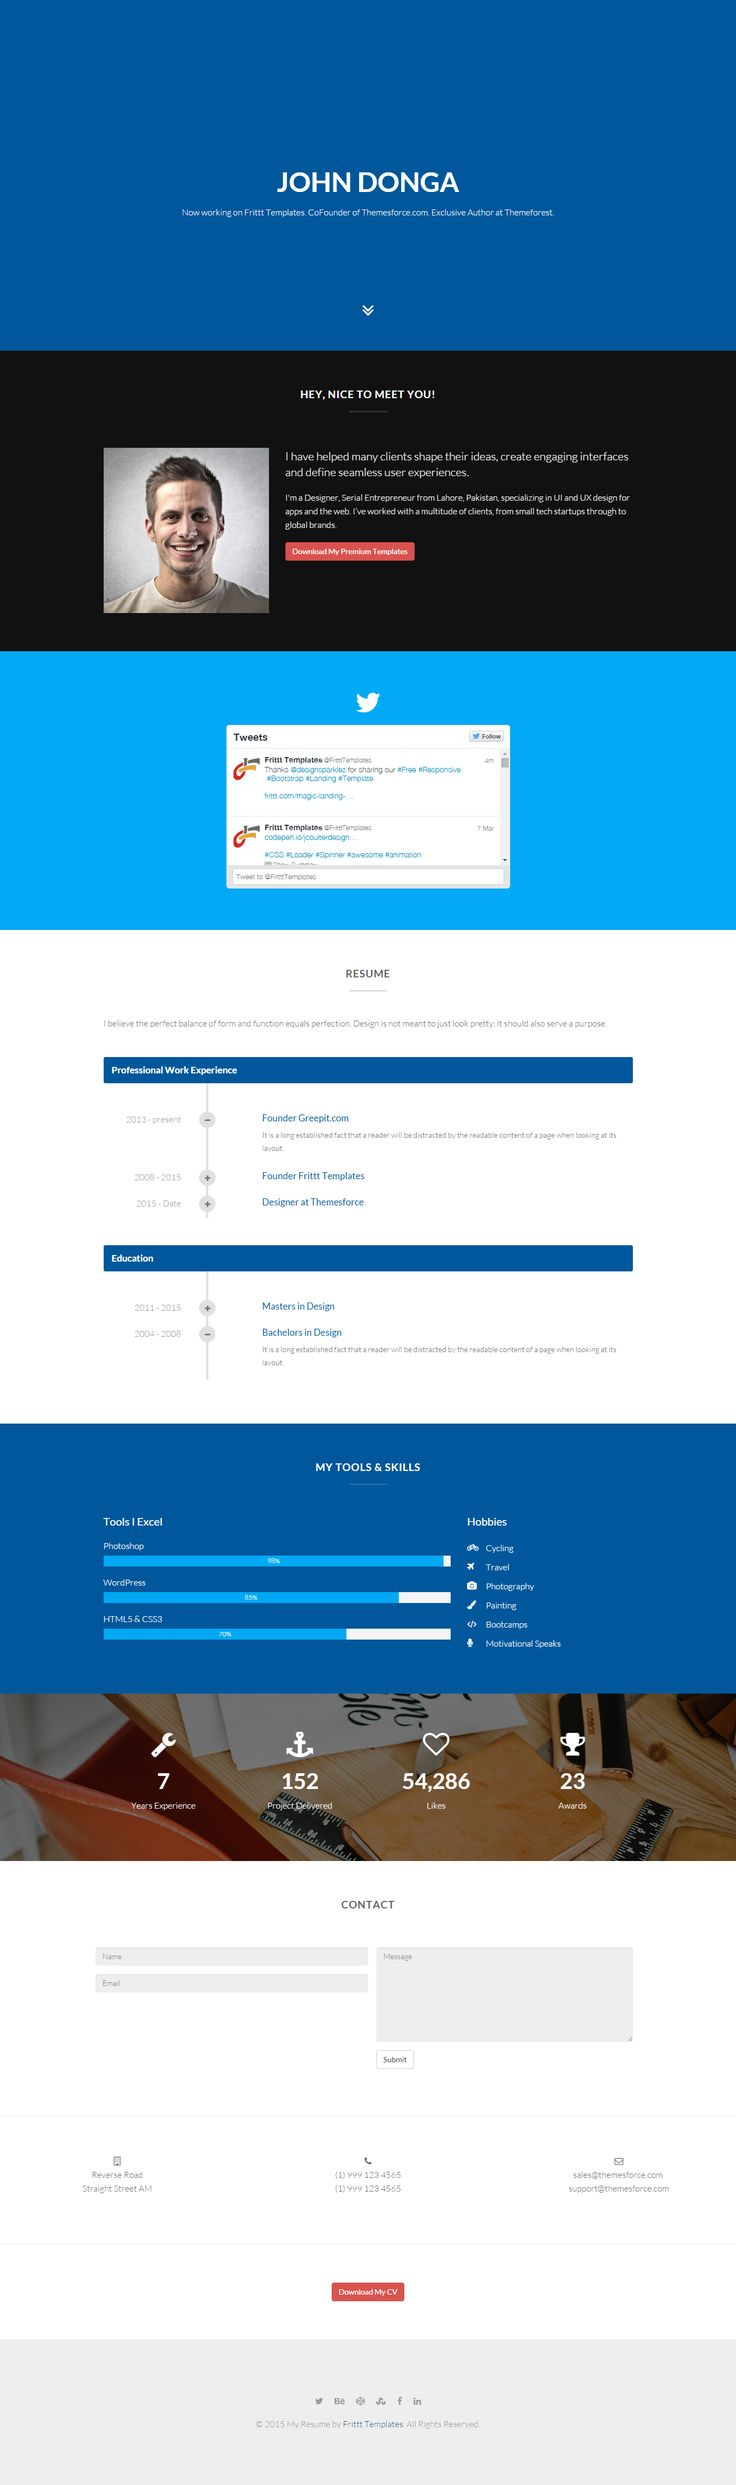 MY.Resume is a modern and creative HTML resume layout template that you can use to create the perfect resume layout.